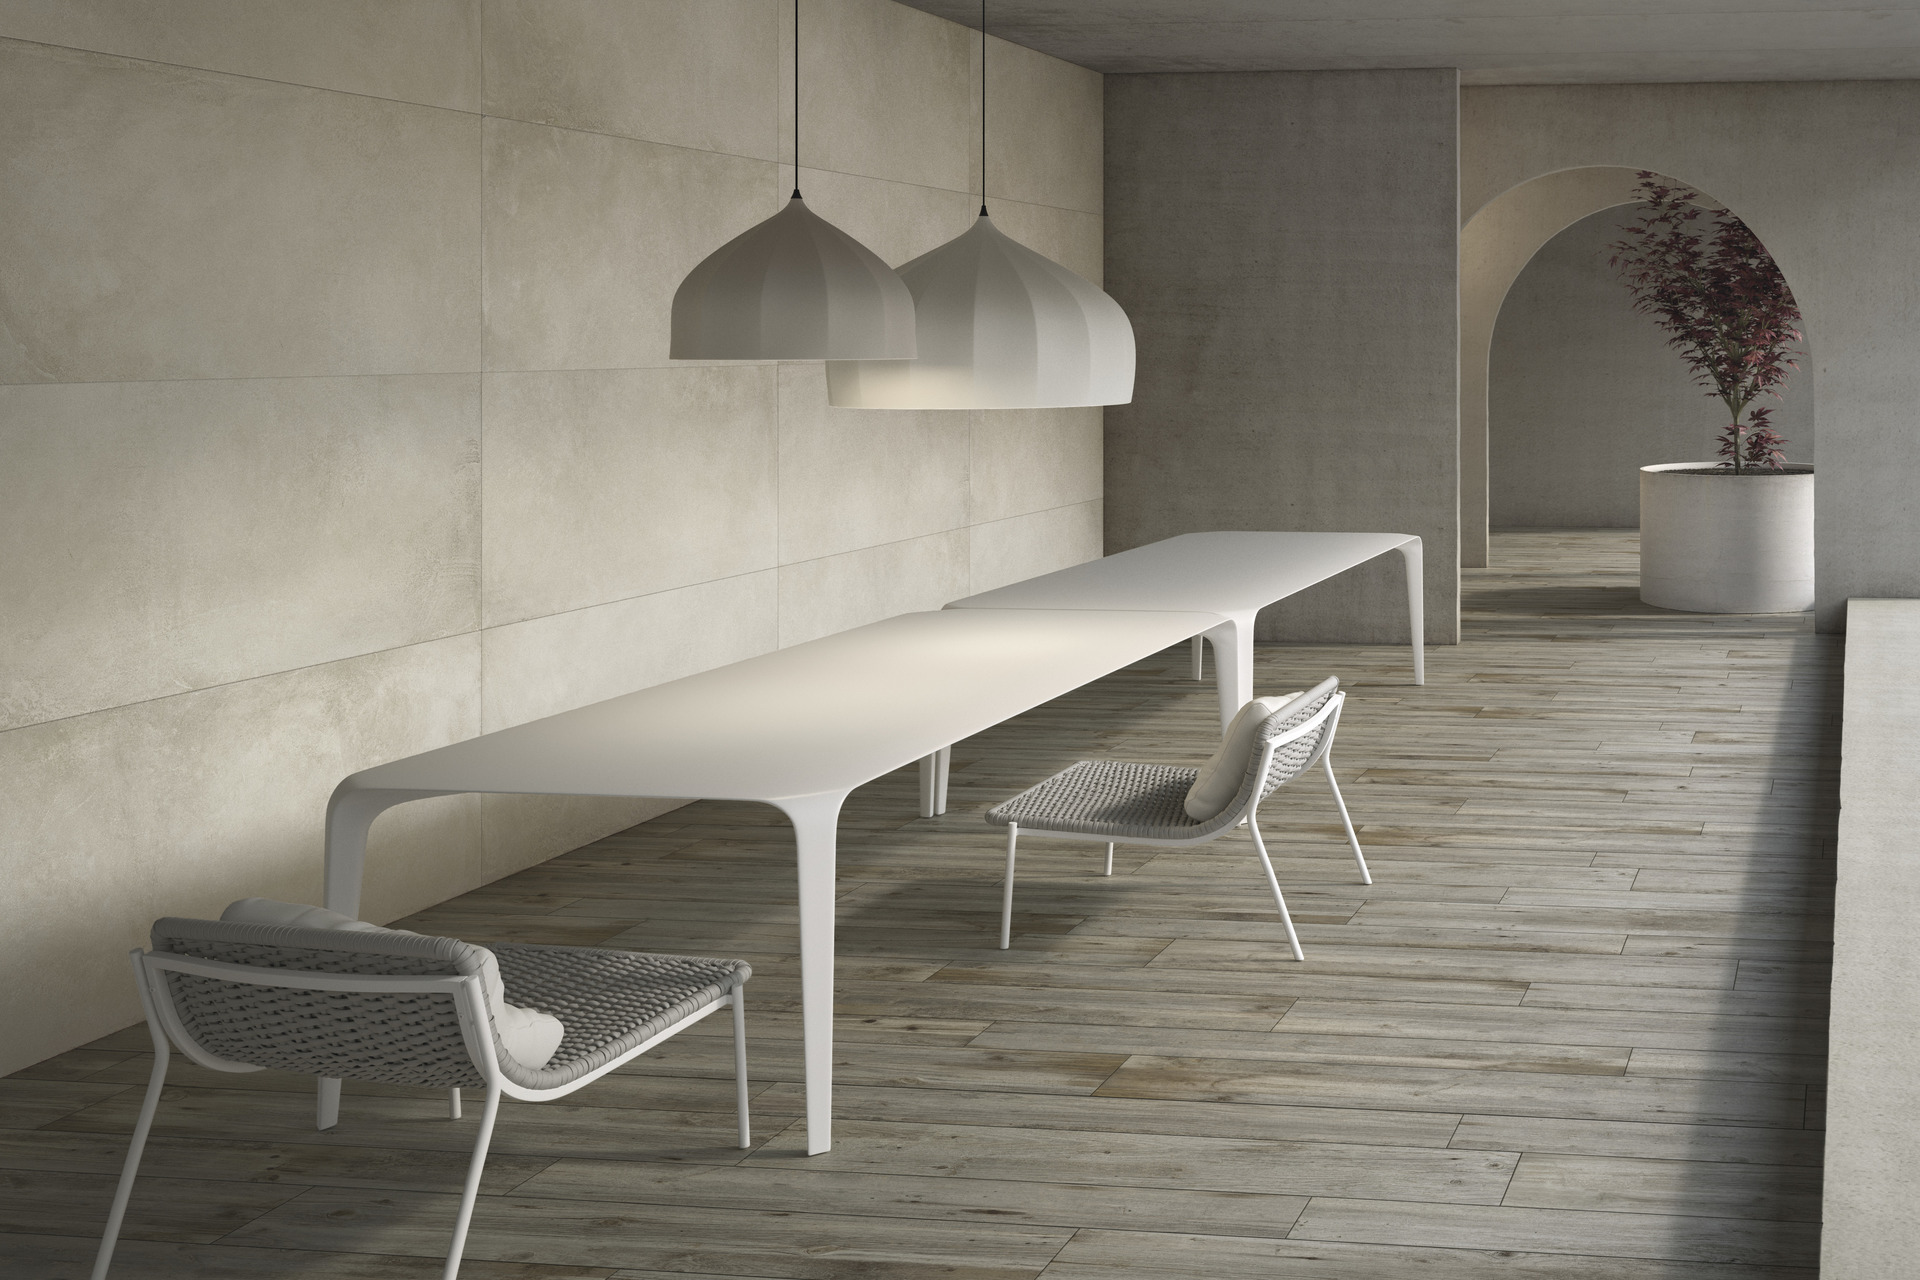 Wood Effect Porcelain Tiles - Innovative Slabs Legni High-Tech